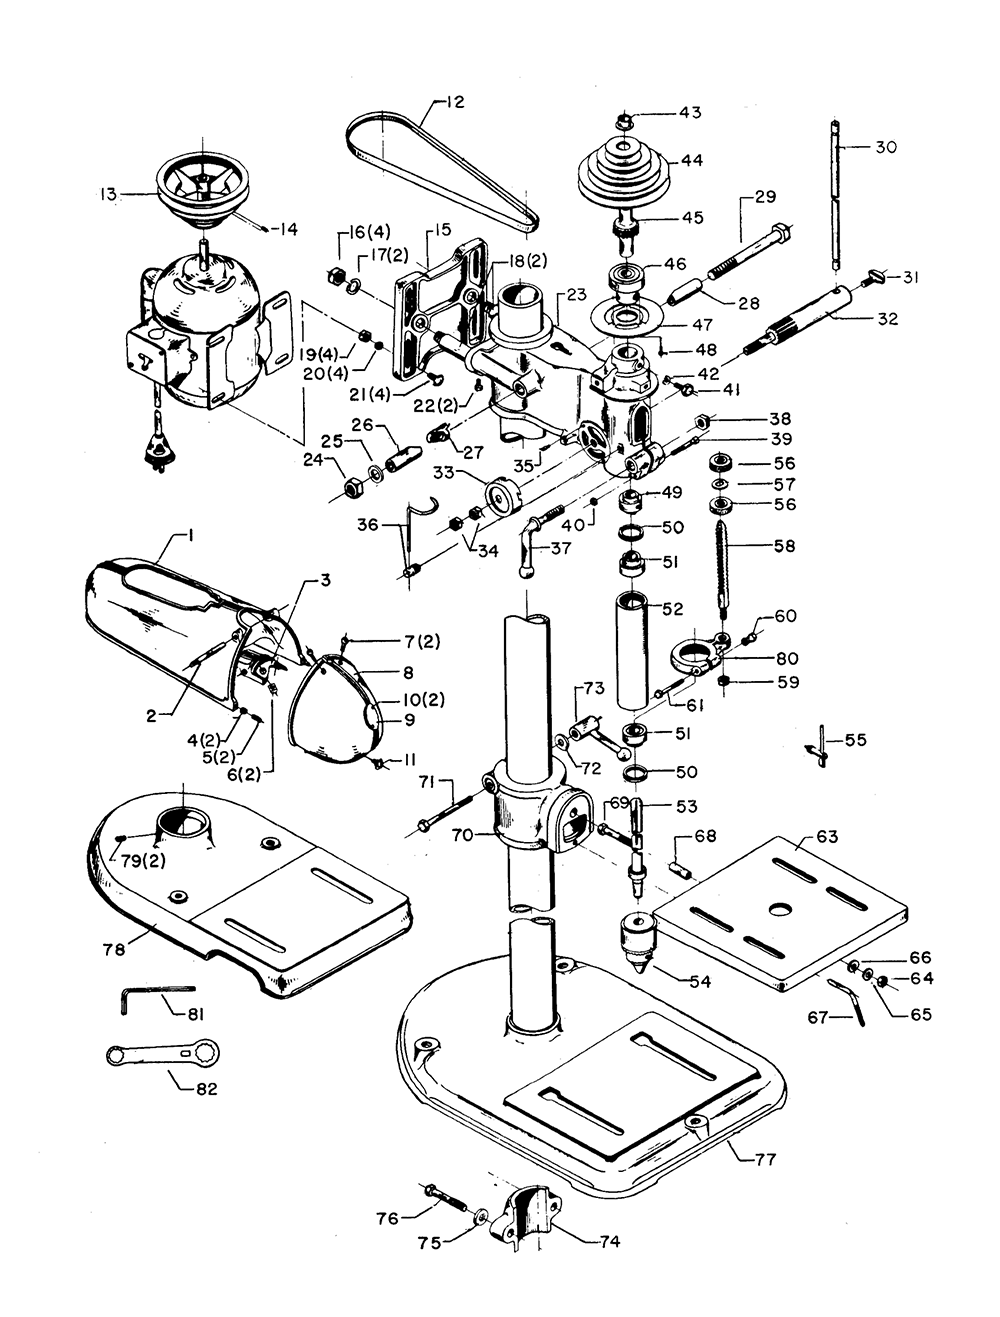 Craftsman Bench Grinder Wiring Diagram Electrical Delta Drill Press Exploded View Switch